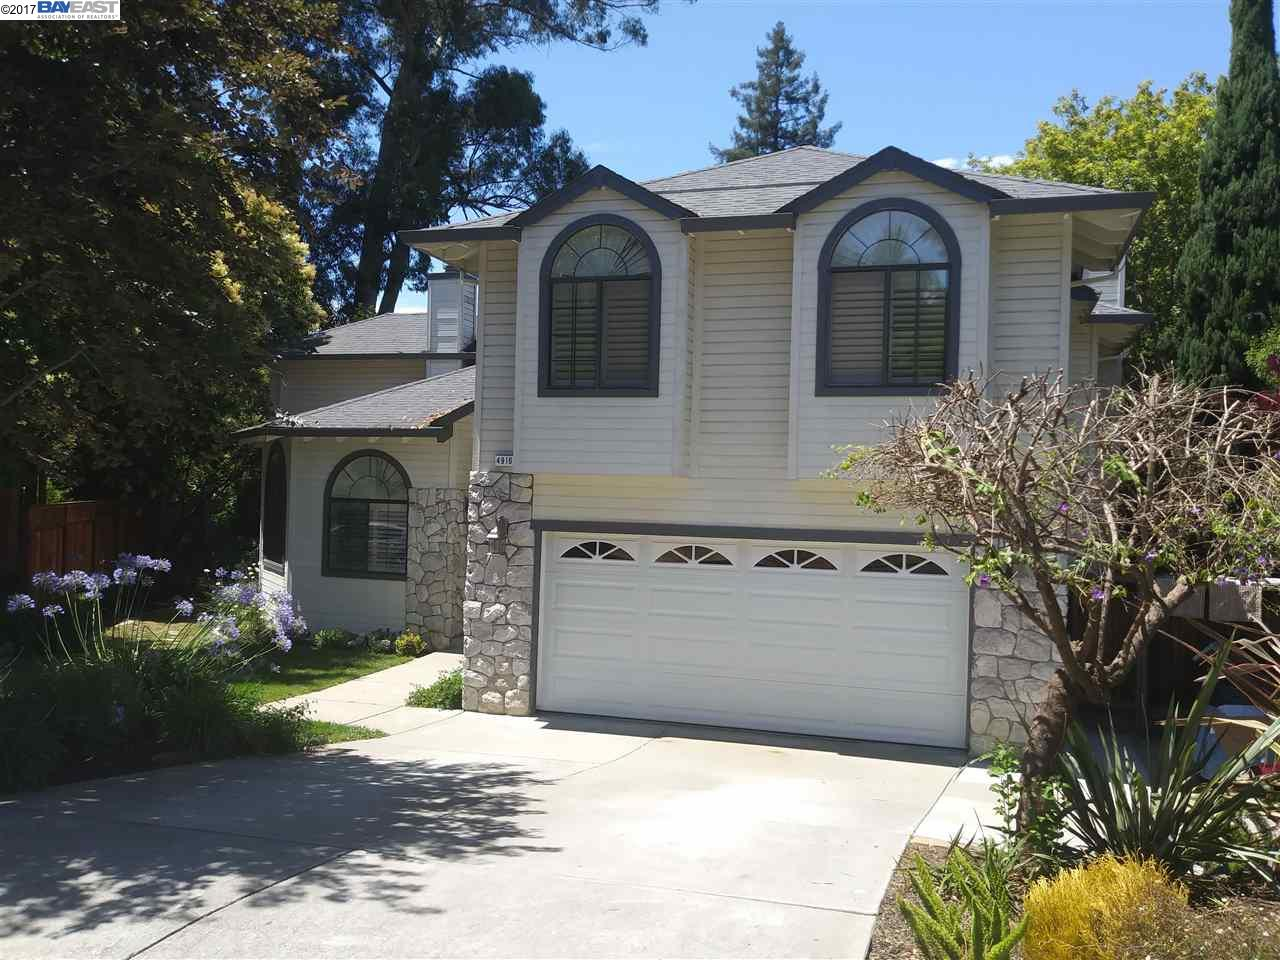 4916 Lone Oak Pl, CASTRO VALLEY, CA 94546